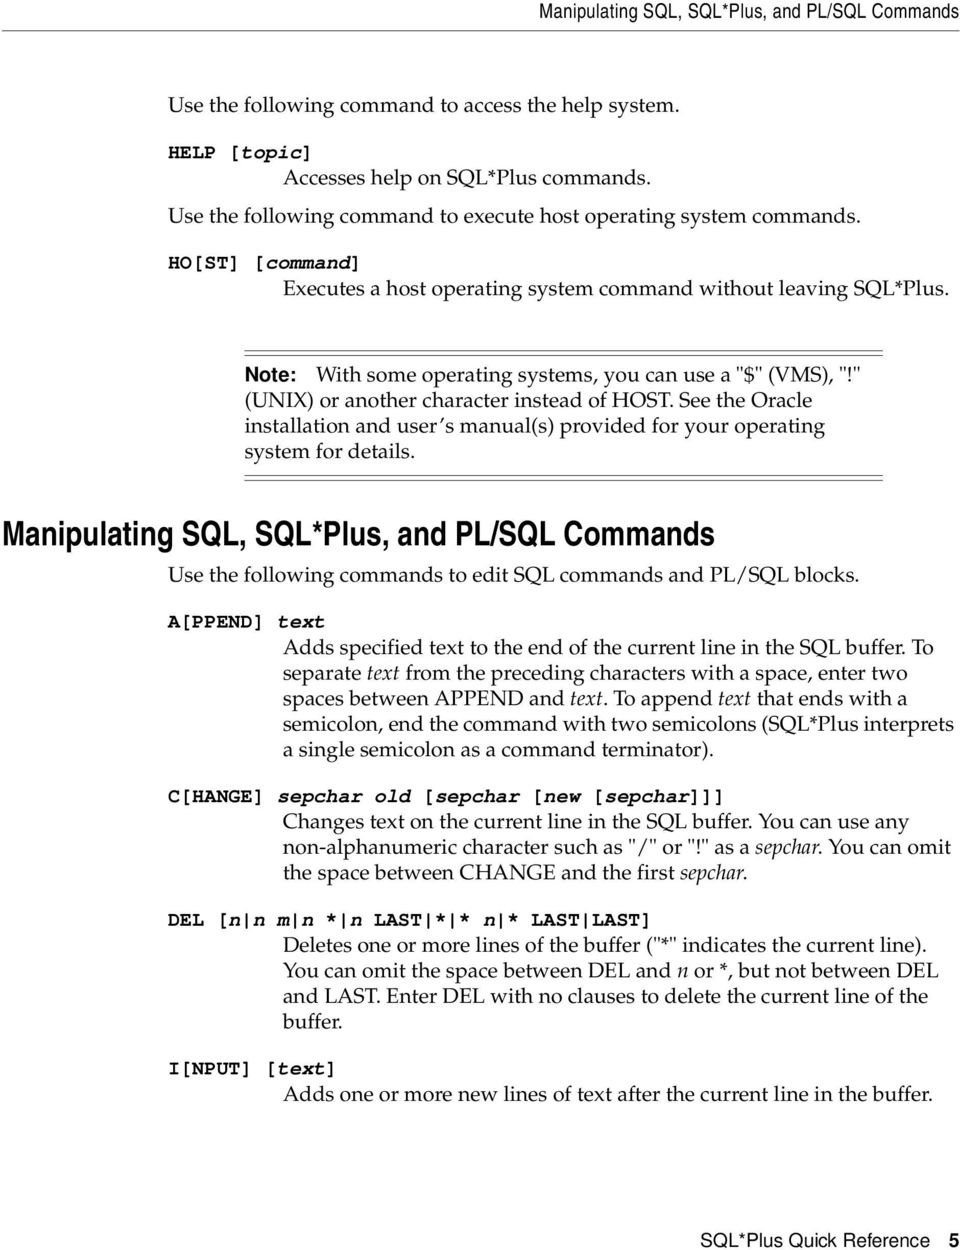 SQL*Plus  Quick Reference  Release February, 1999 Part No  A